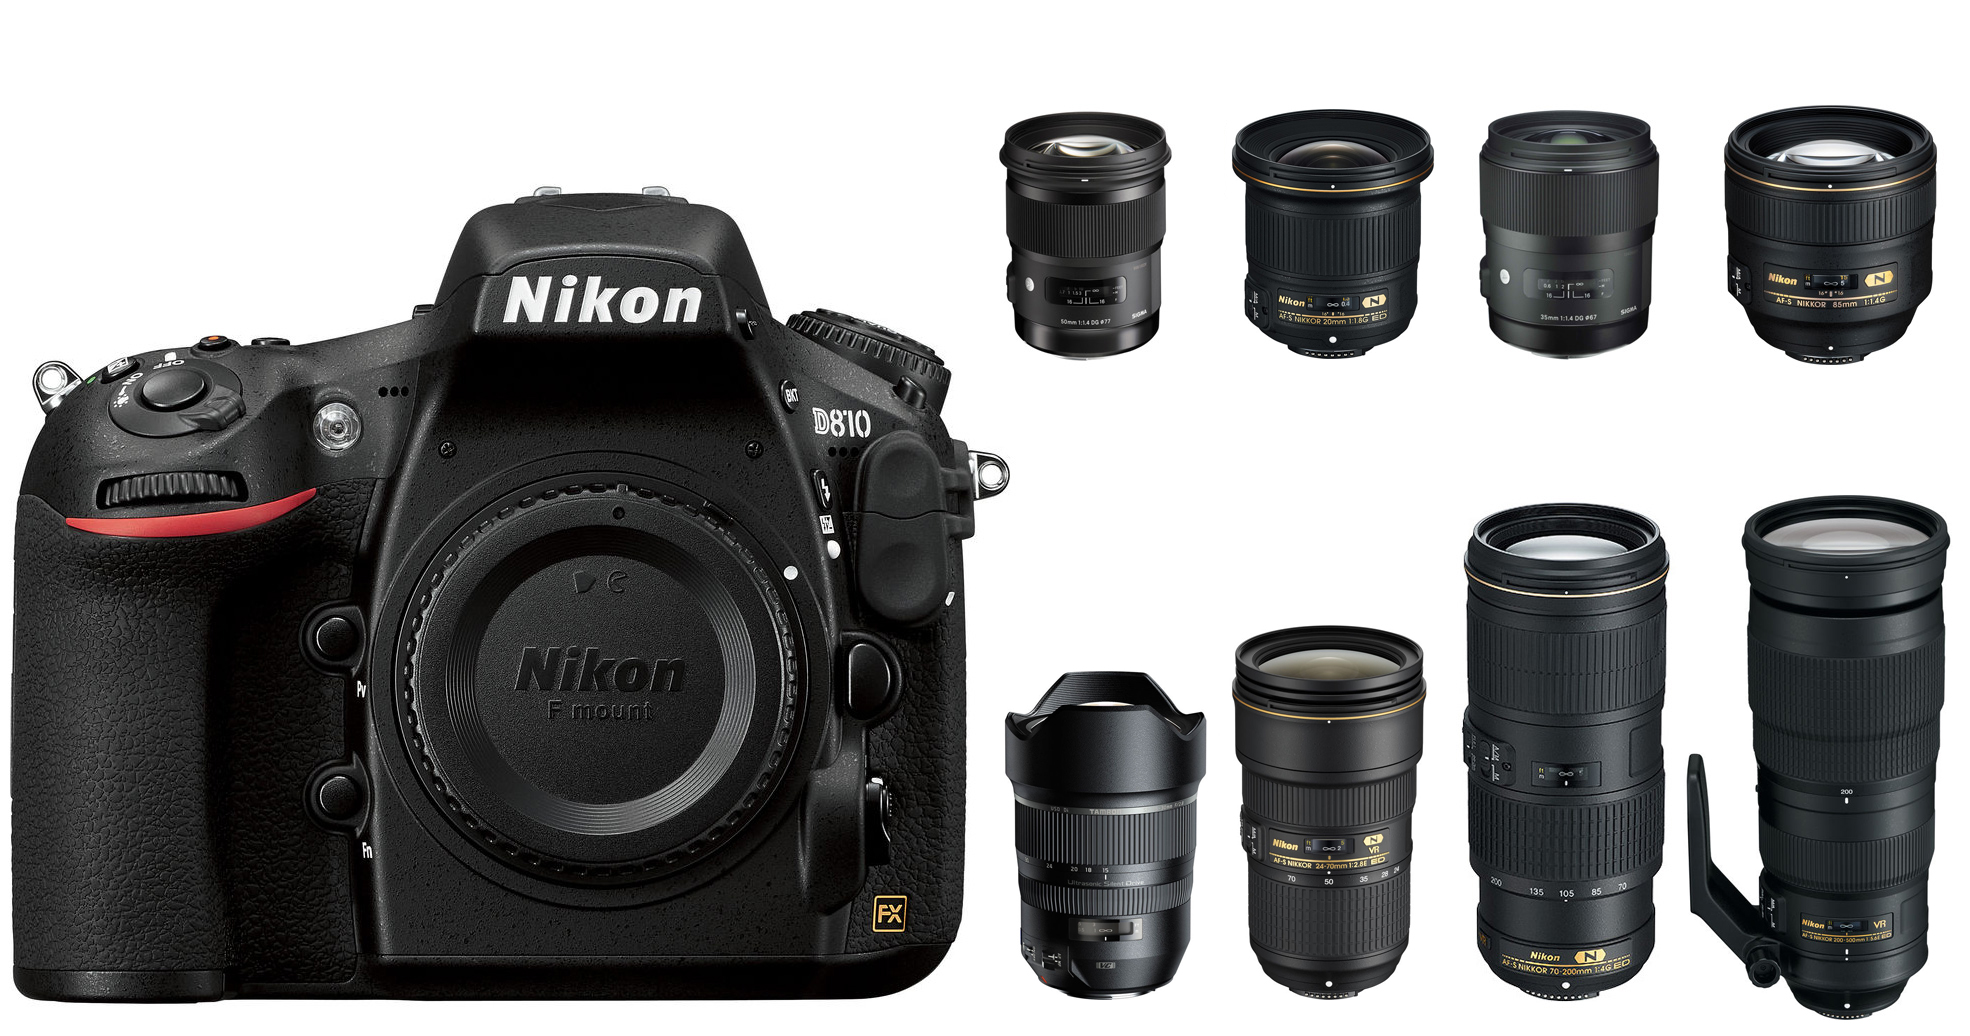 Camera Nikon Latest Dslr Camera 2014 best lenses for nikon d810 camera news at cameraegg recommended is nikons latest full frame professional dslr released in 2014